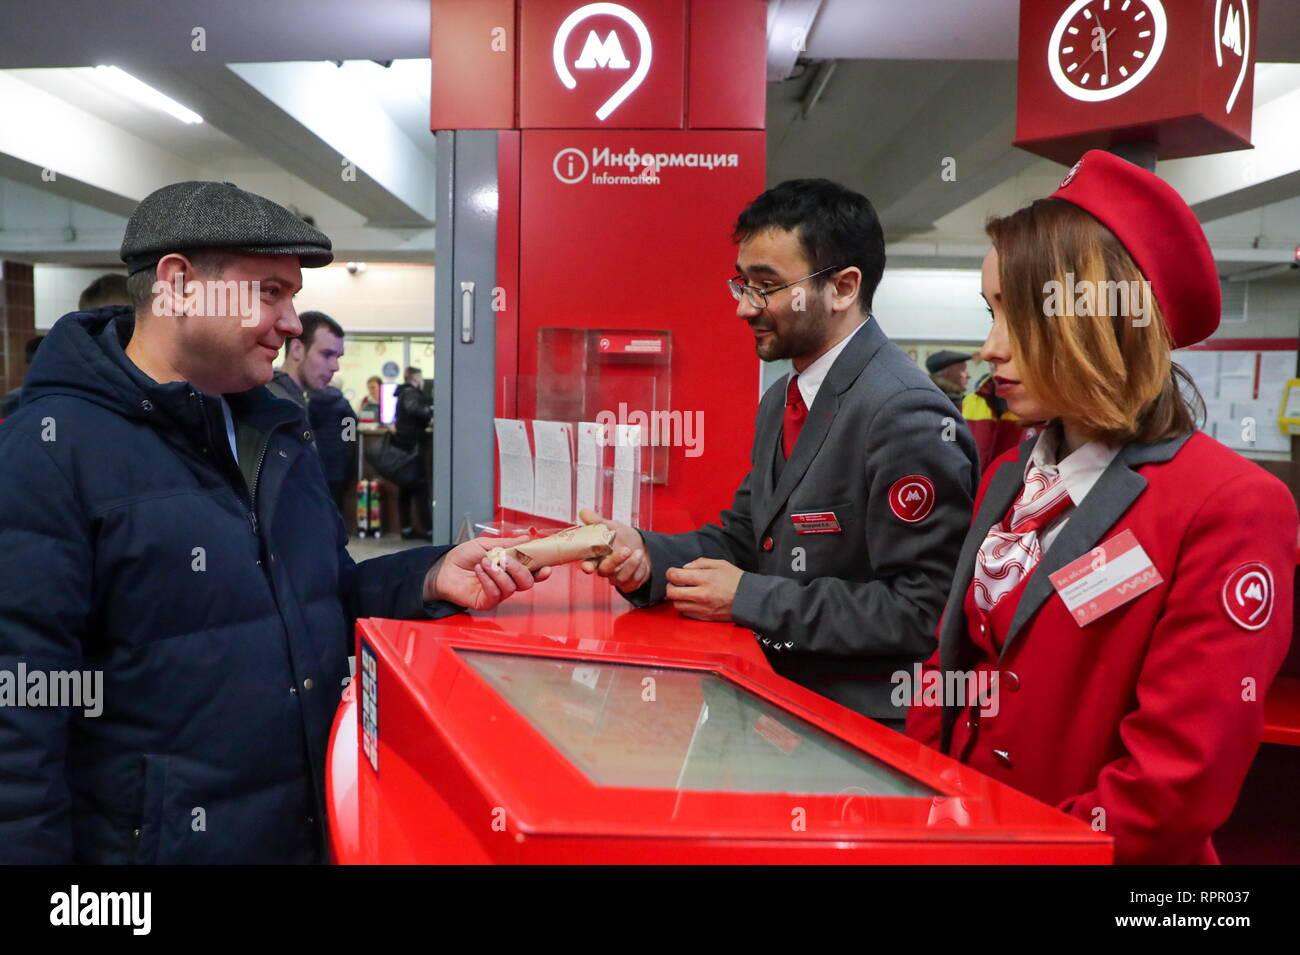 Moscow, Russia. 23rd Feb, 2019. Moscow Metro employees giving out socks to men at the Komsomolskaya station of the Moscow Metro on Defender of the Fatherland Day. Vyacheslav Prokofyev/TASS Credit: ITAR-TASS News Agency/Alamy Live News Stock Photo